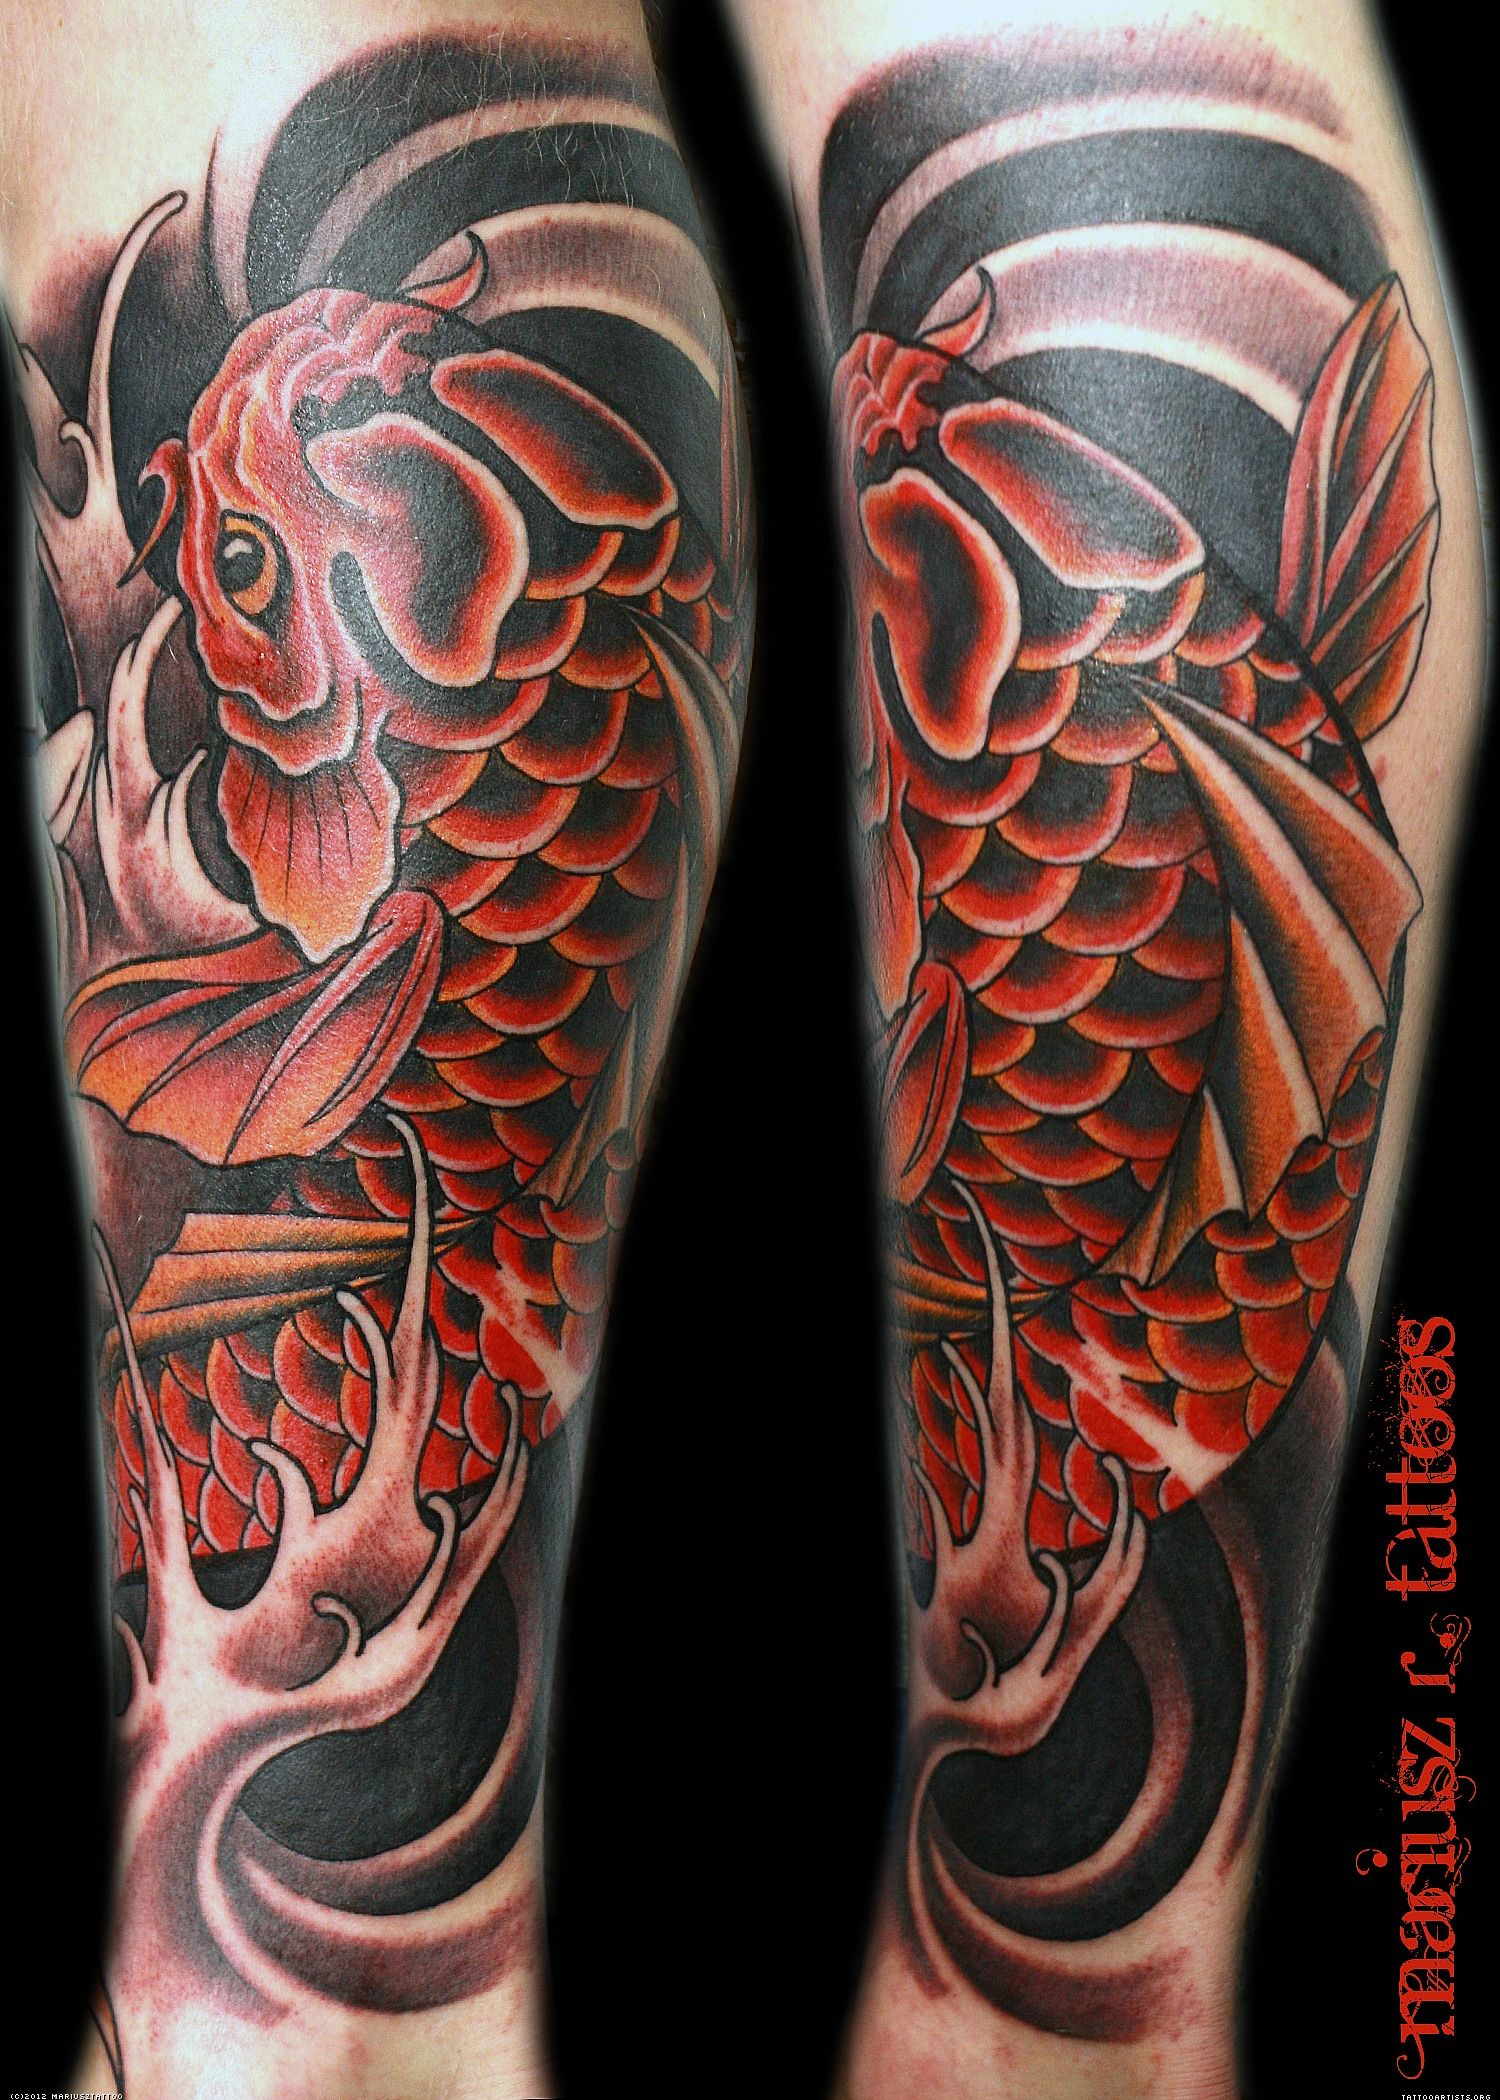 Red Koi Leg Tattoo Artists Org Tattoo Koi Fish Tattoo Carp